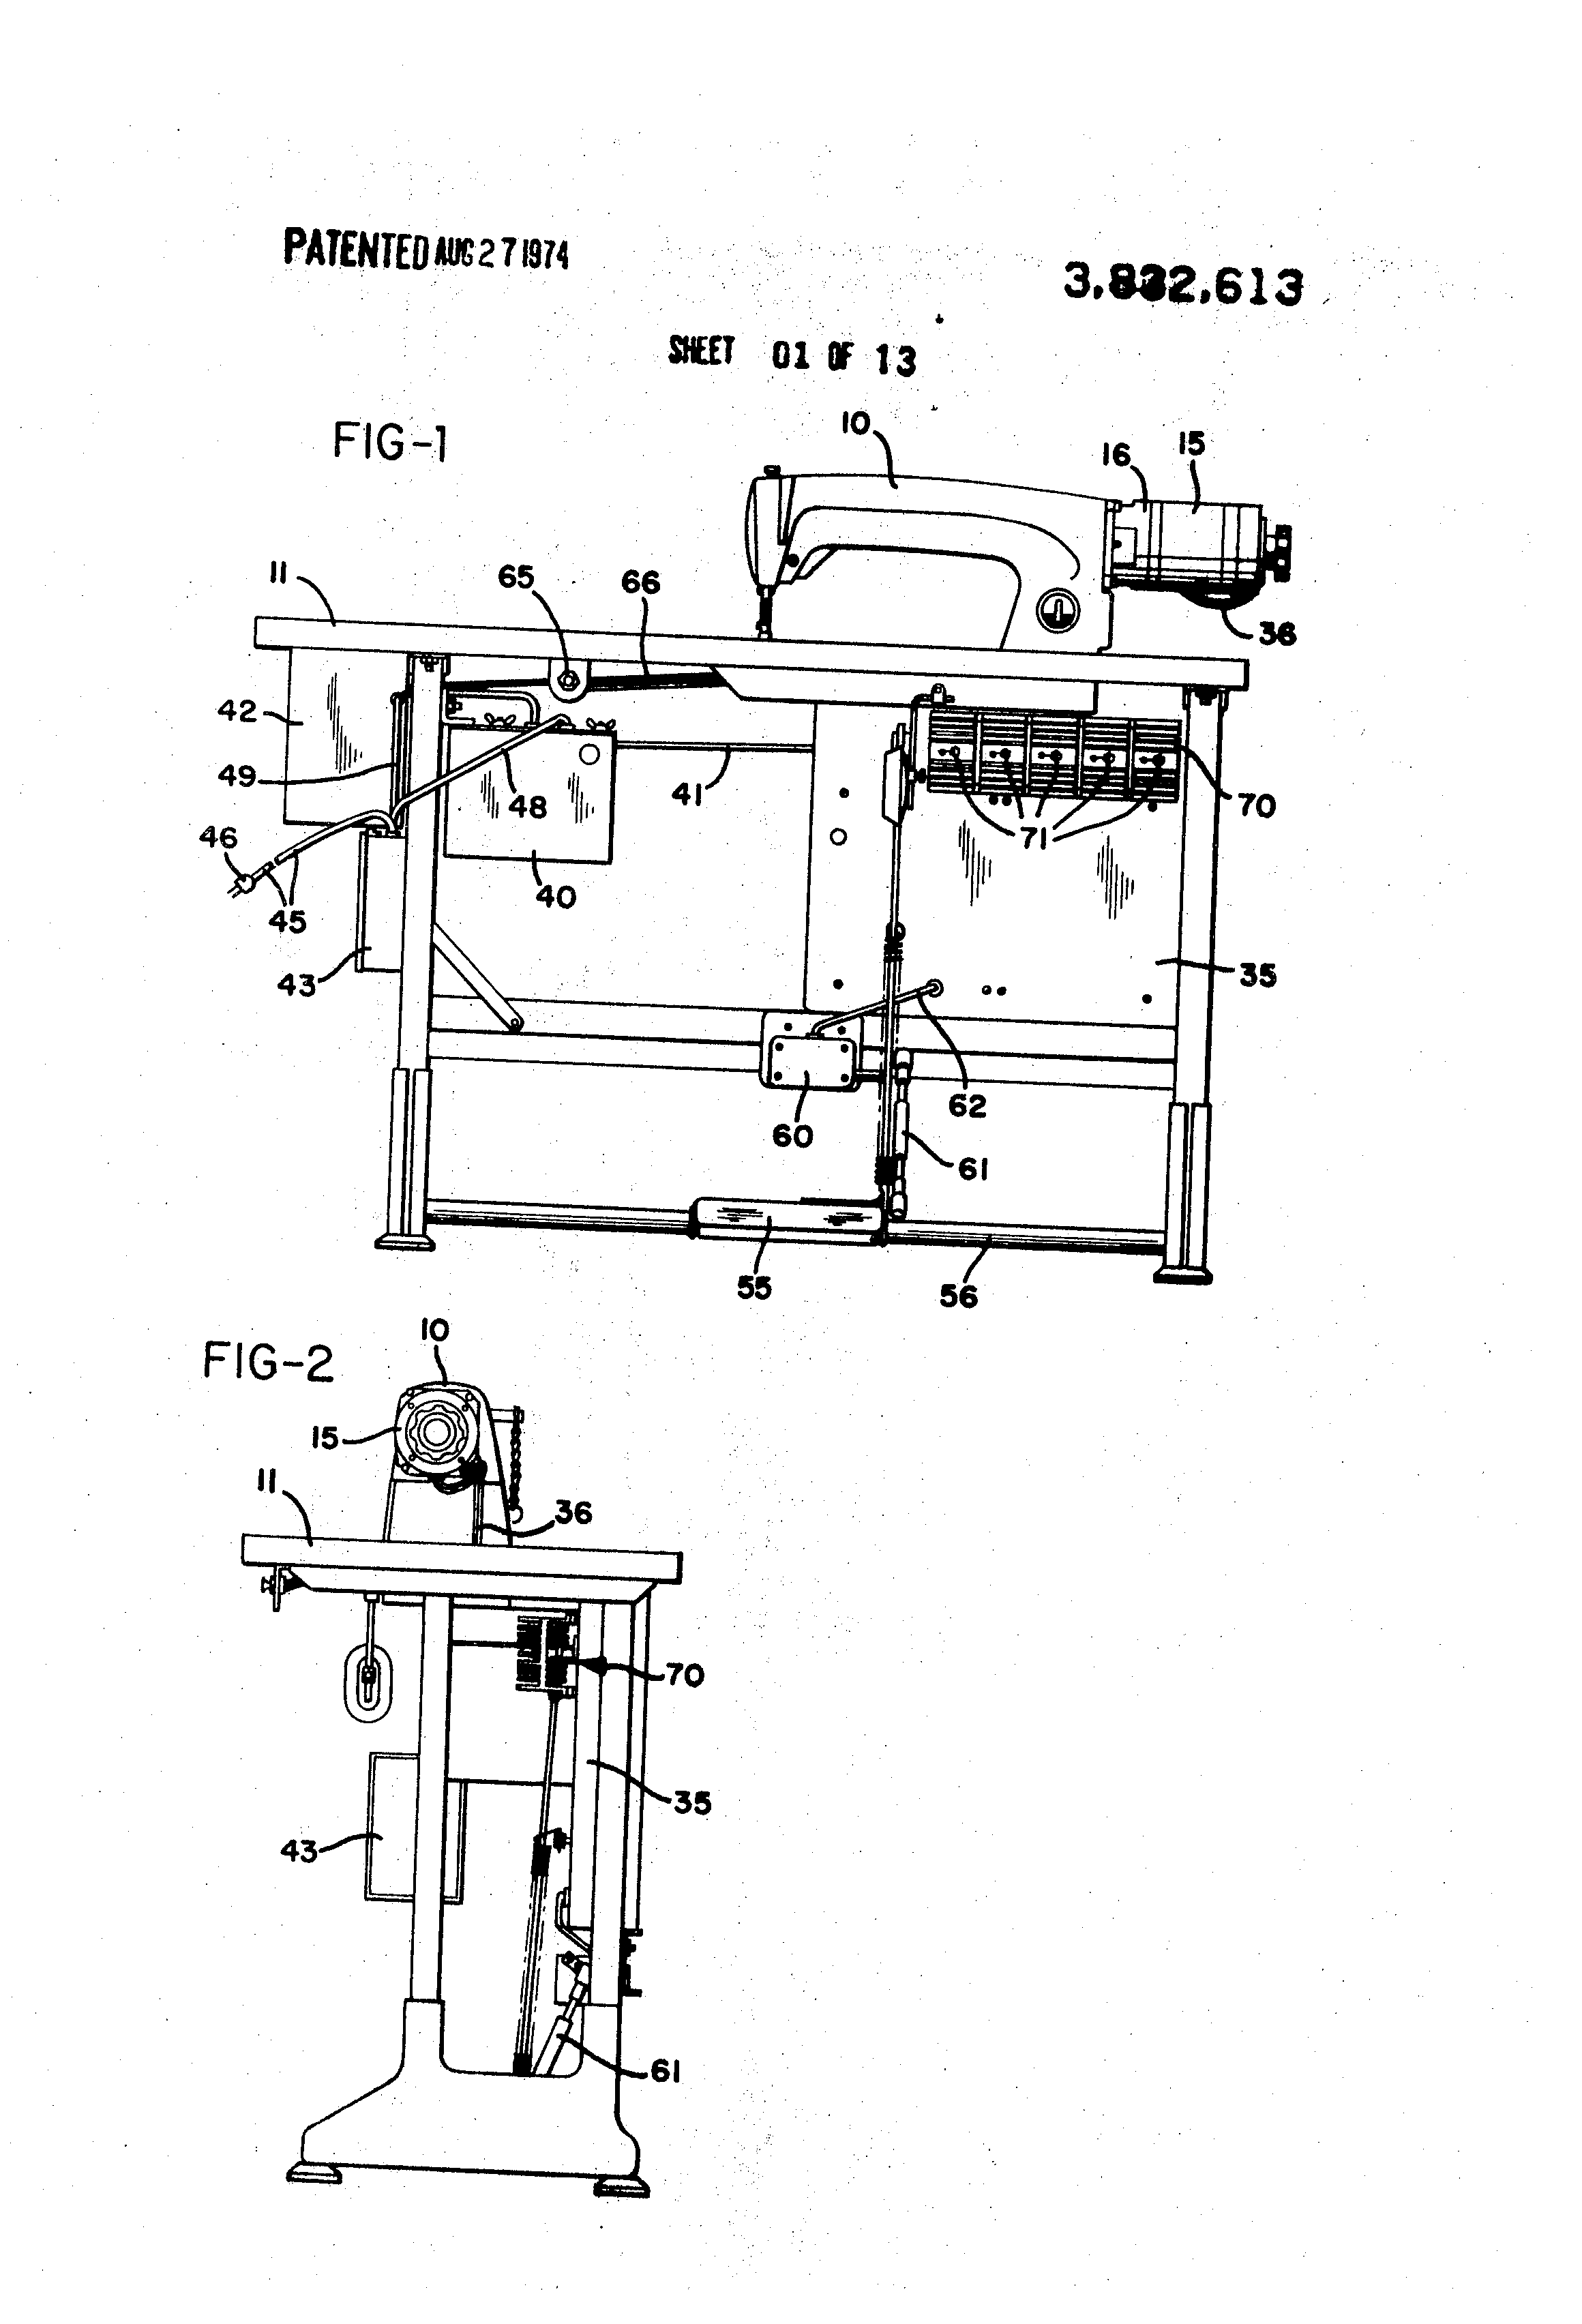 US3832613 1 patent us3832613 sewing machine motor and control circuit singer sewing machine foot pedal wiring diagram at aneh.co